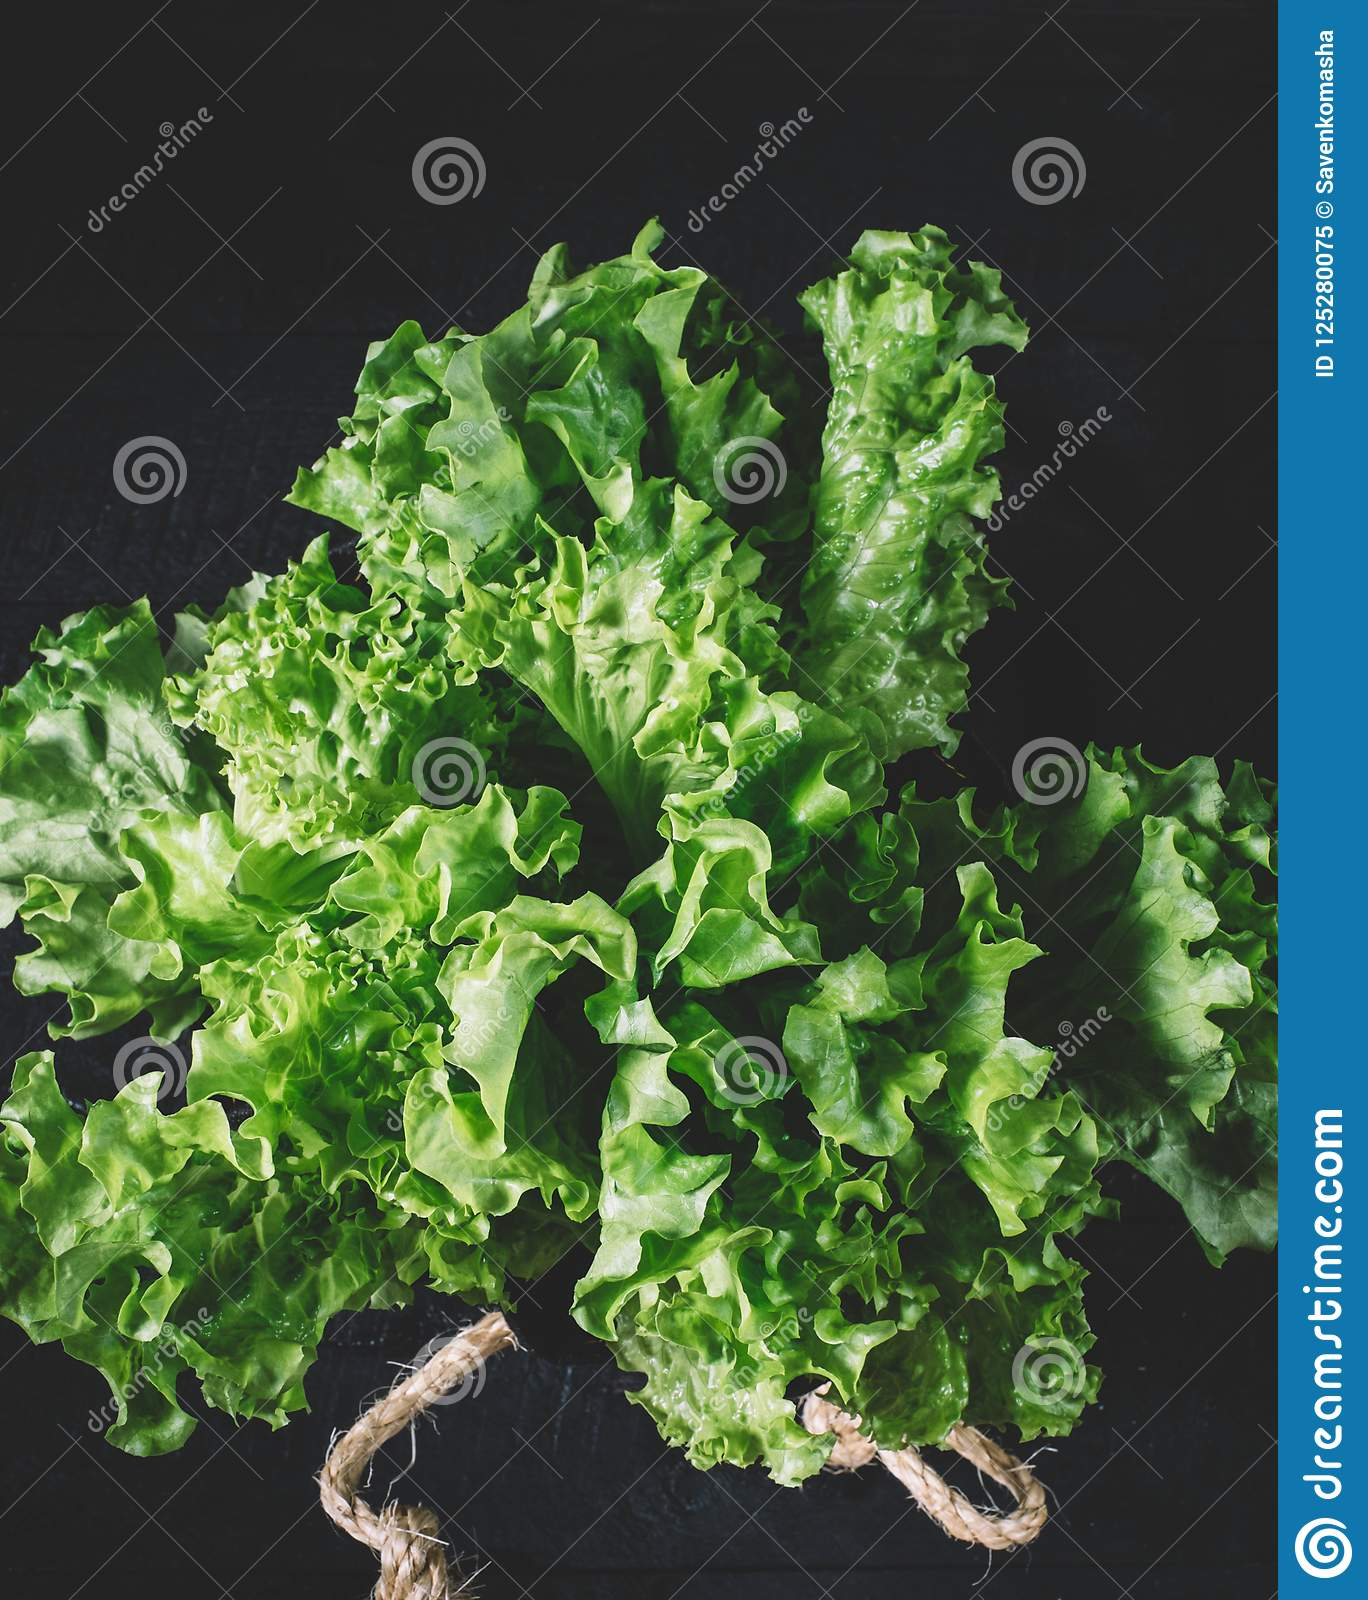 Green lettuce leaves on a background of white brick wall, fresh healthy salad food on kitchen table, space mock up, dieting leaf